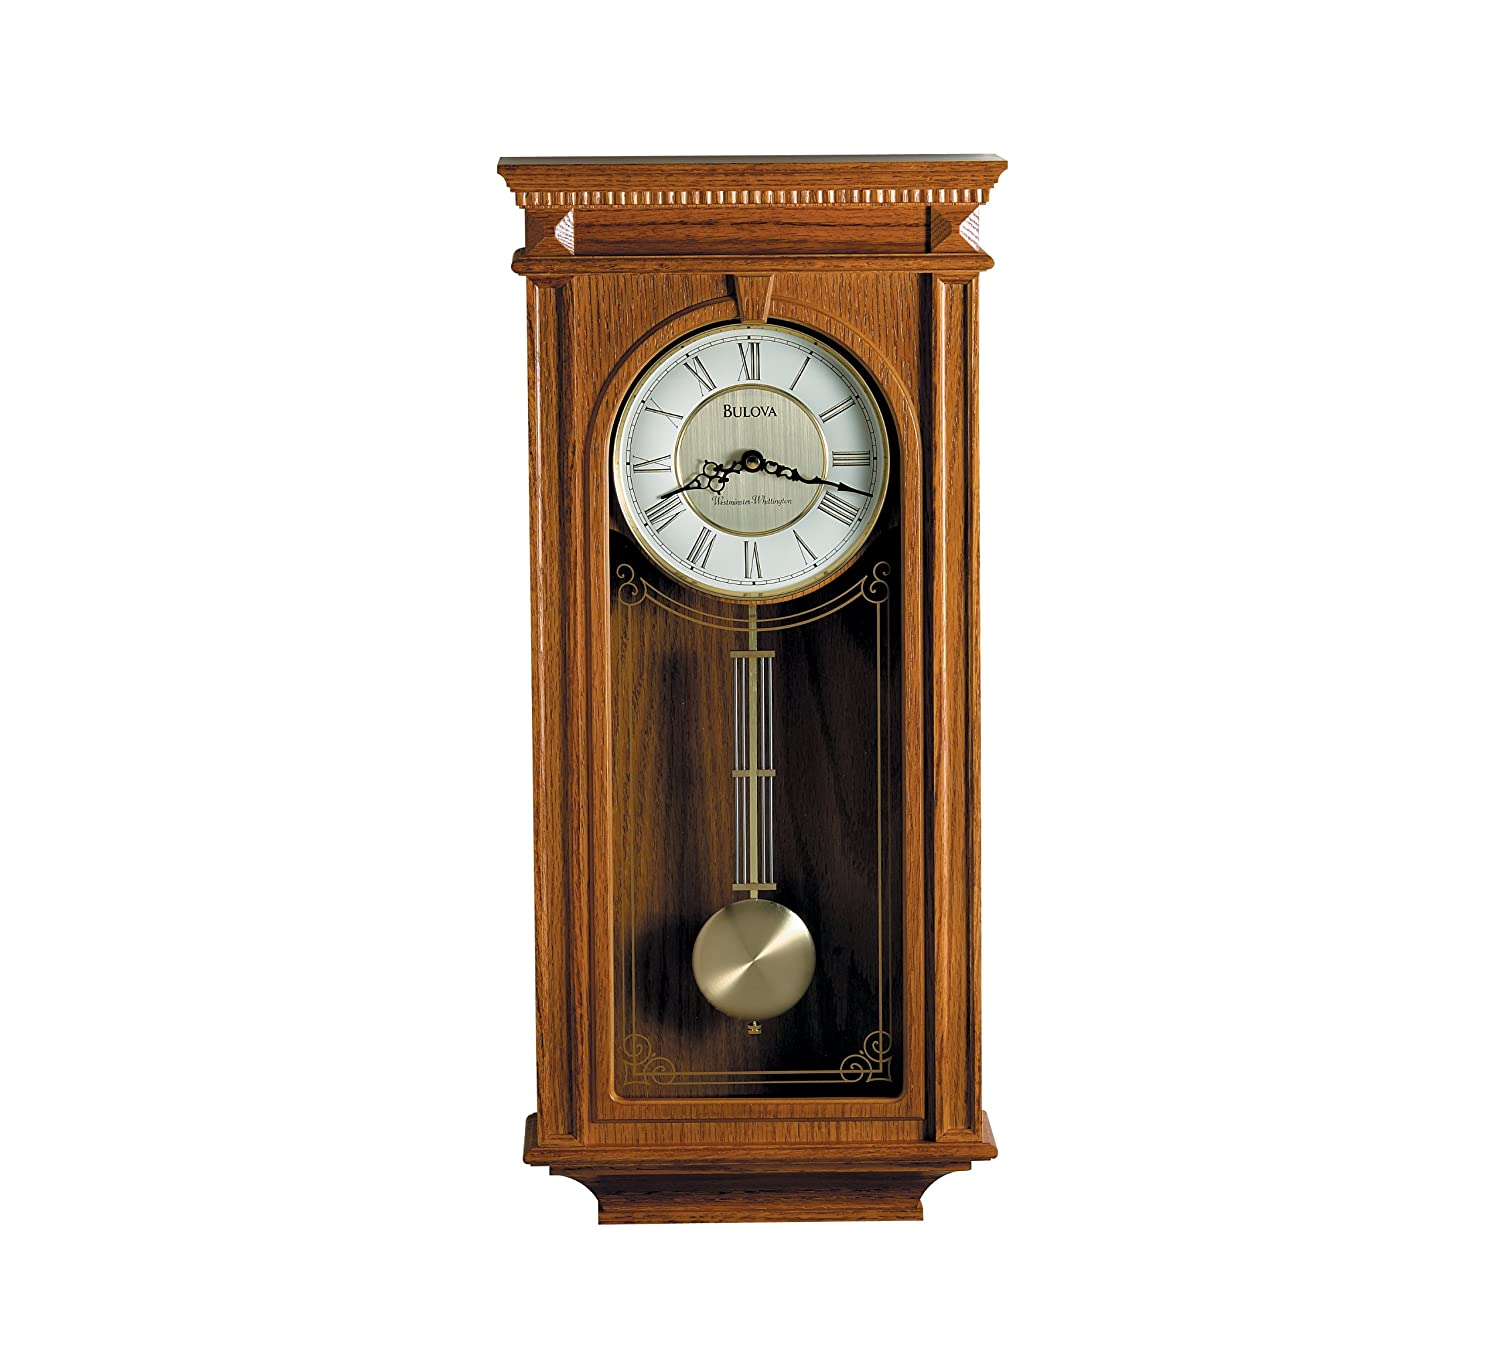 Amazoncom Bulova C4419 Manorcourt Clock Golden Oak Finish Home